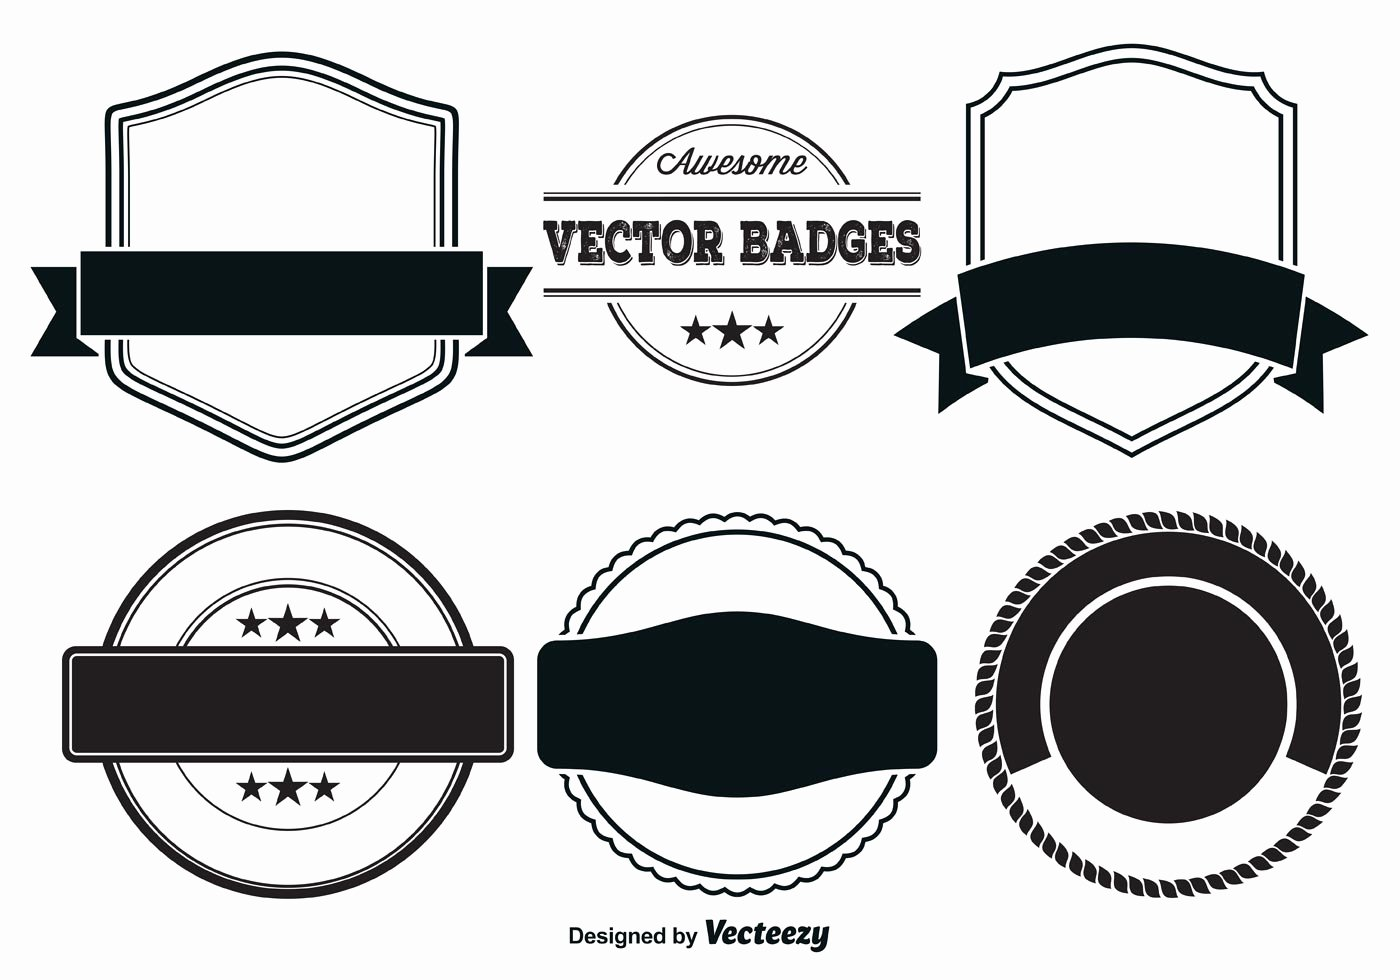 Blank Vintage Logo Template Fresh Vector Badge Templates Download Free Vector Art Stock